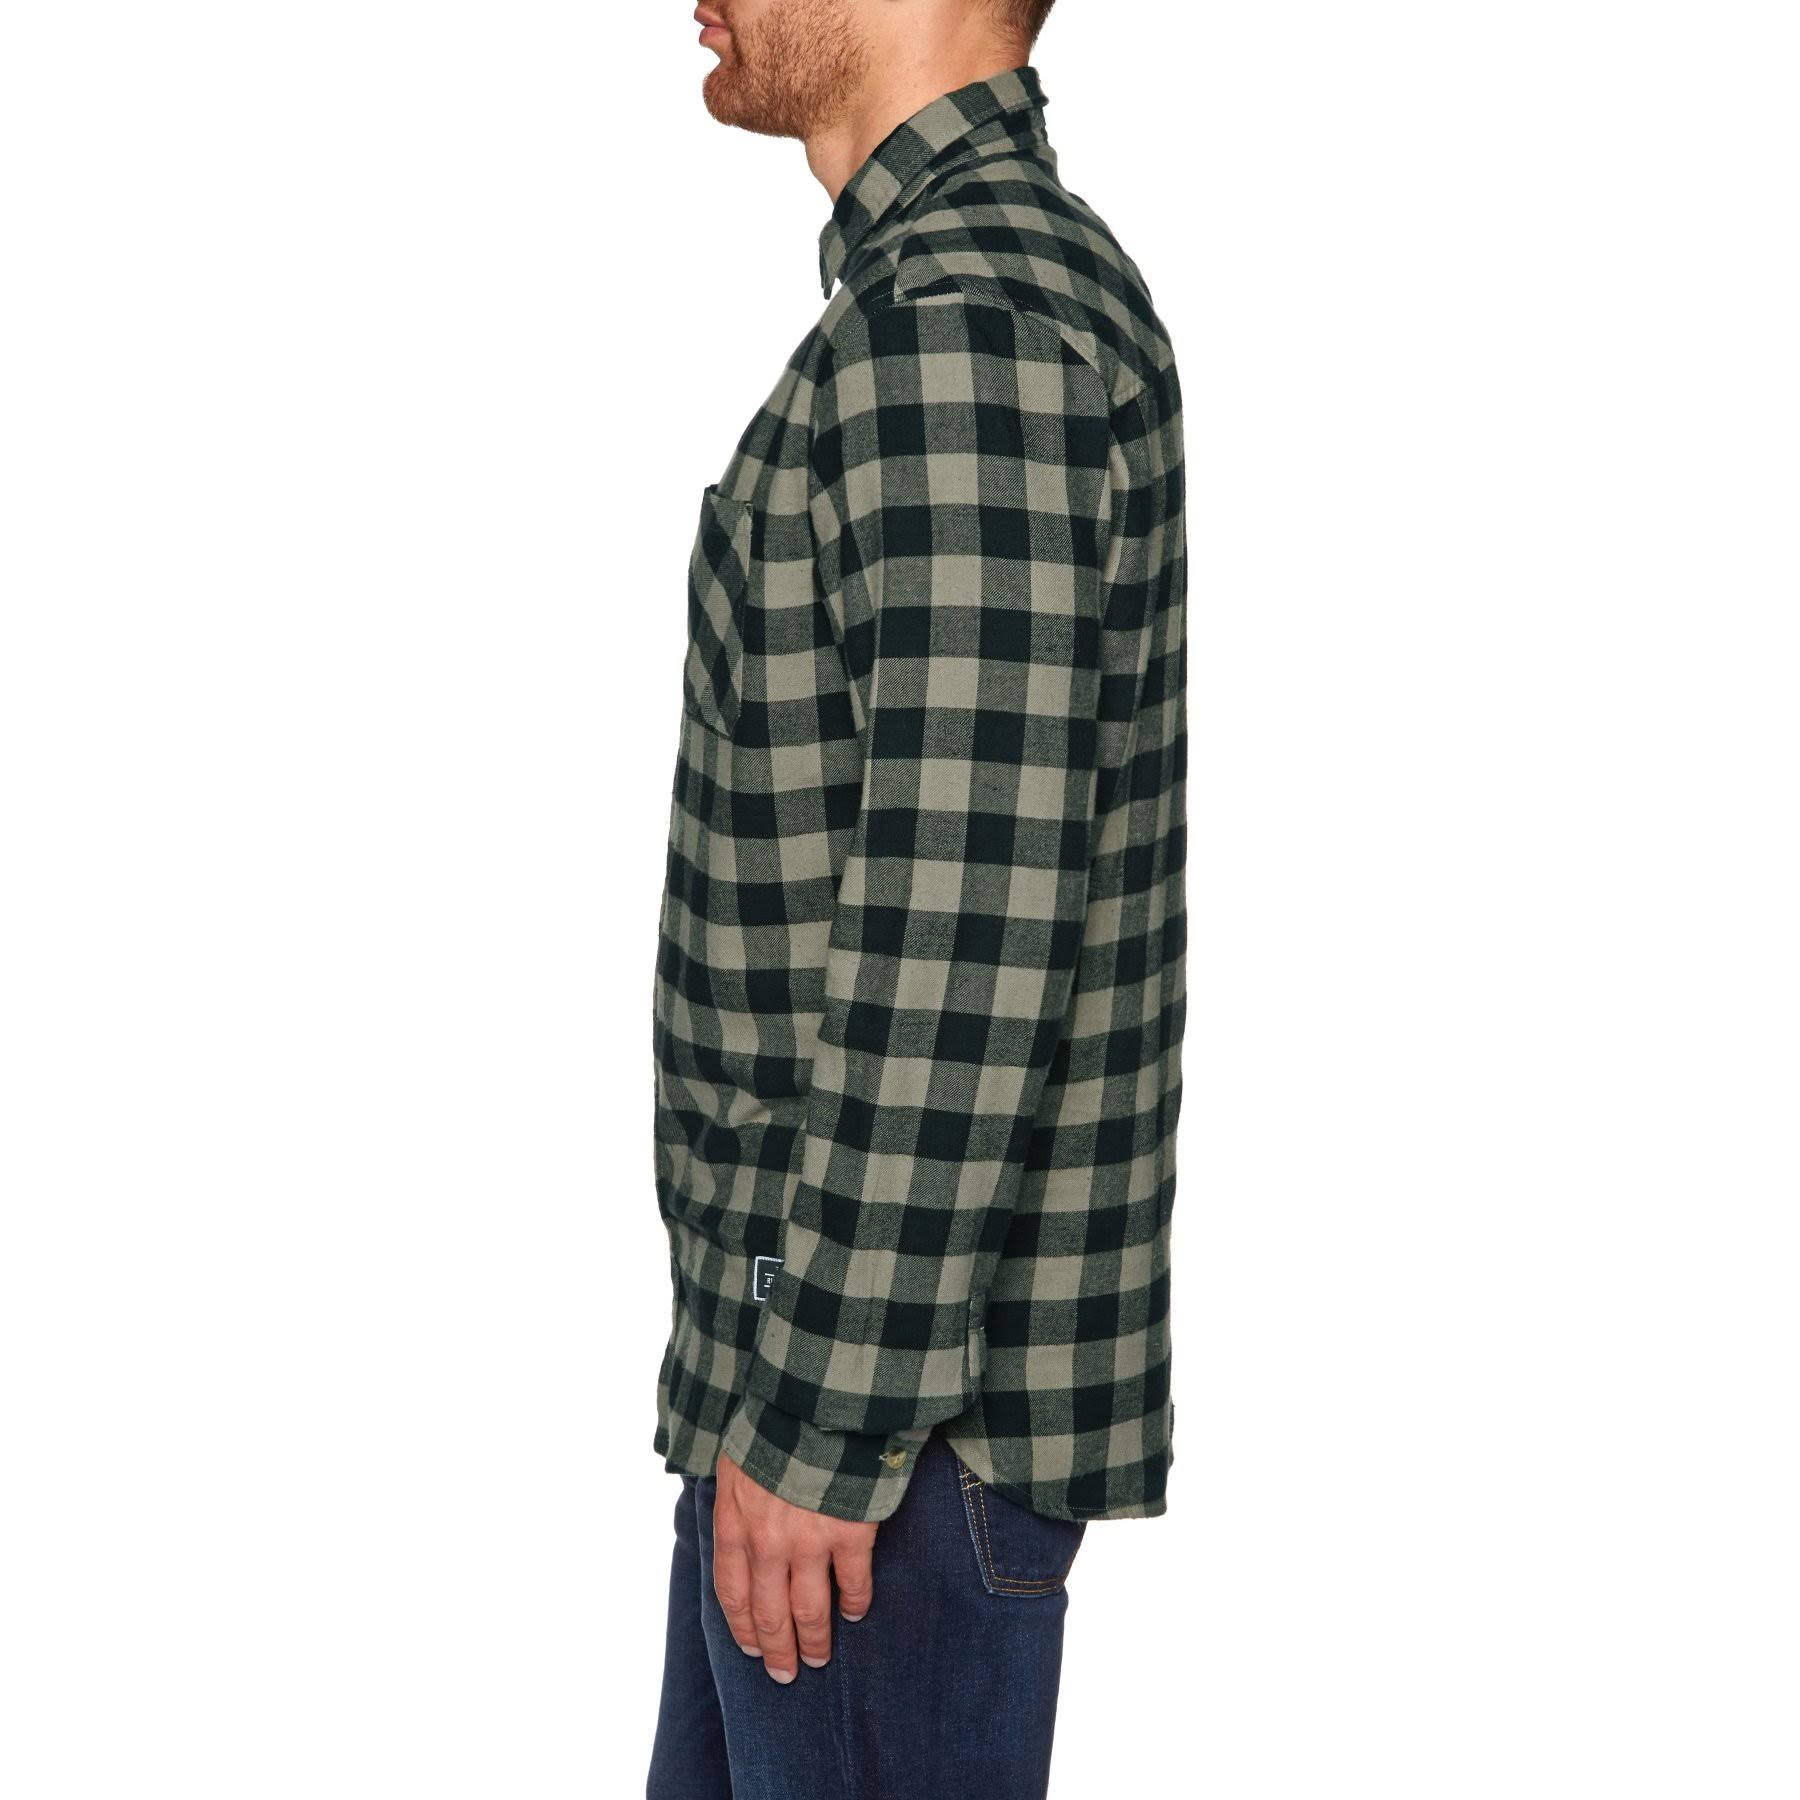 Rip Curl Check Camisa It Verde YHqWndw